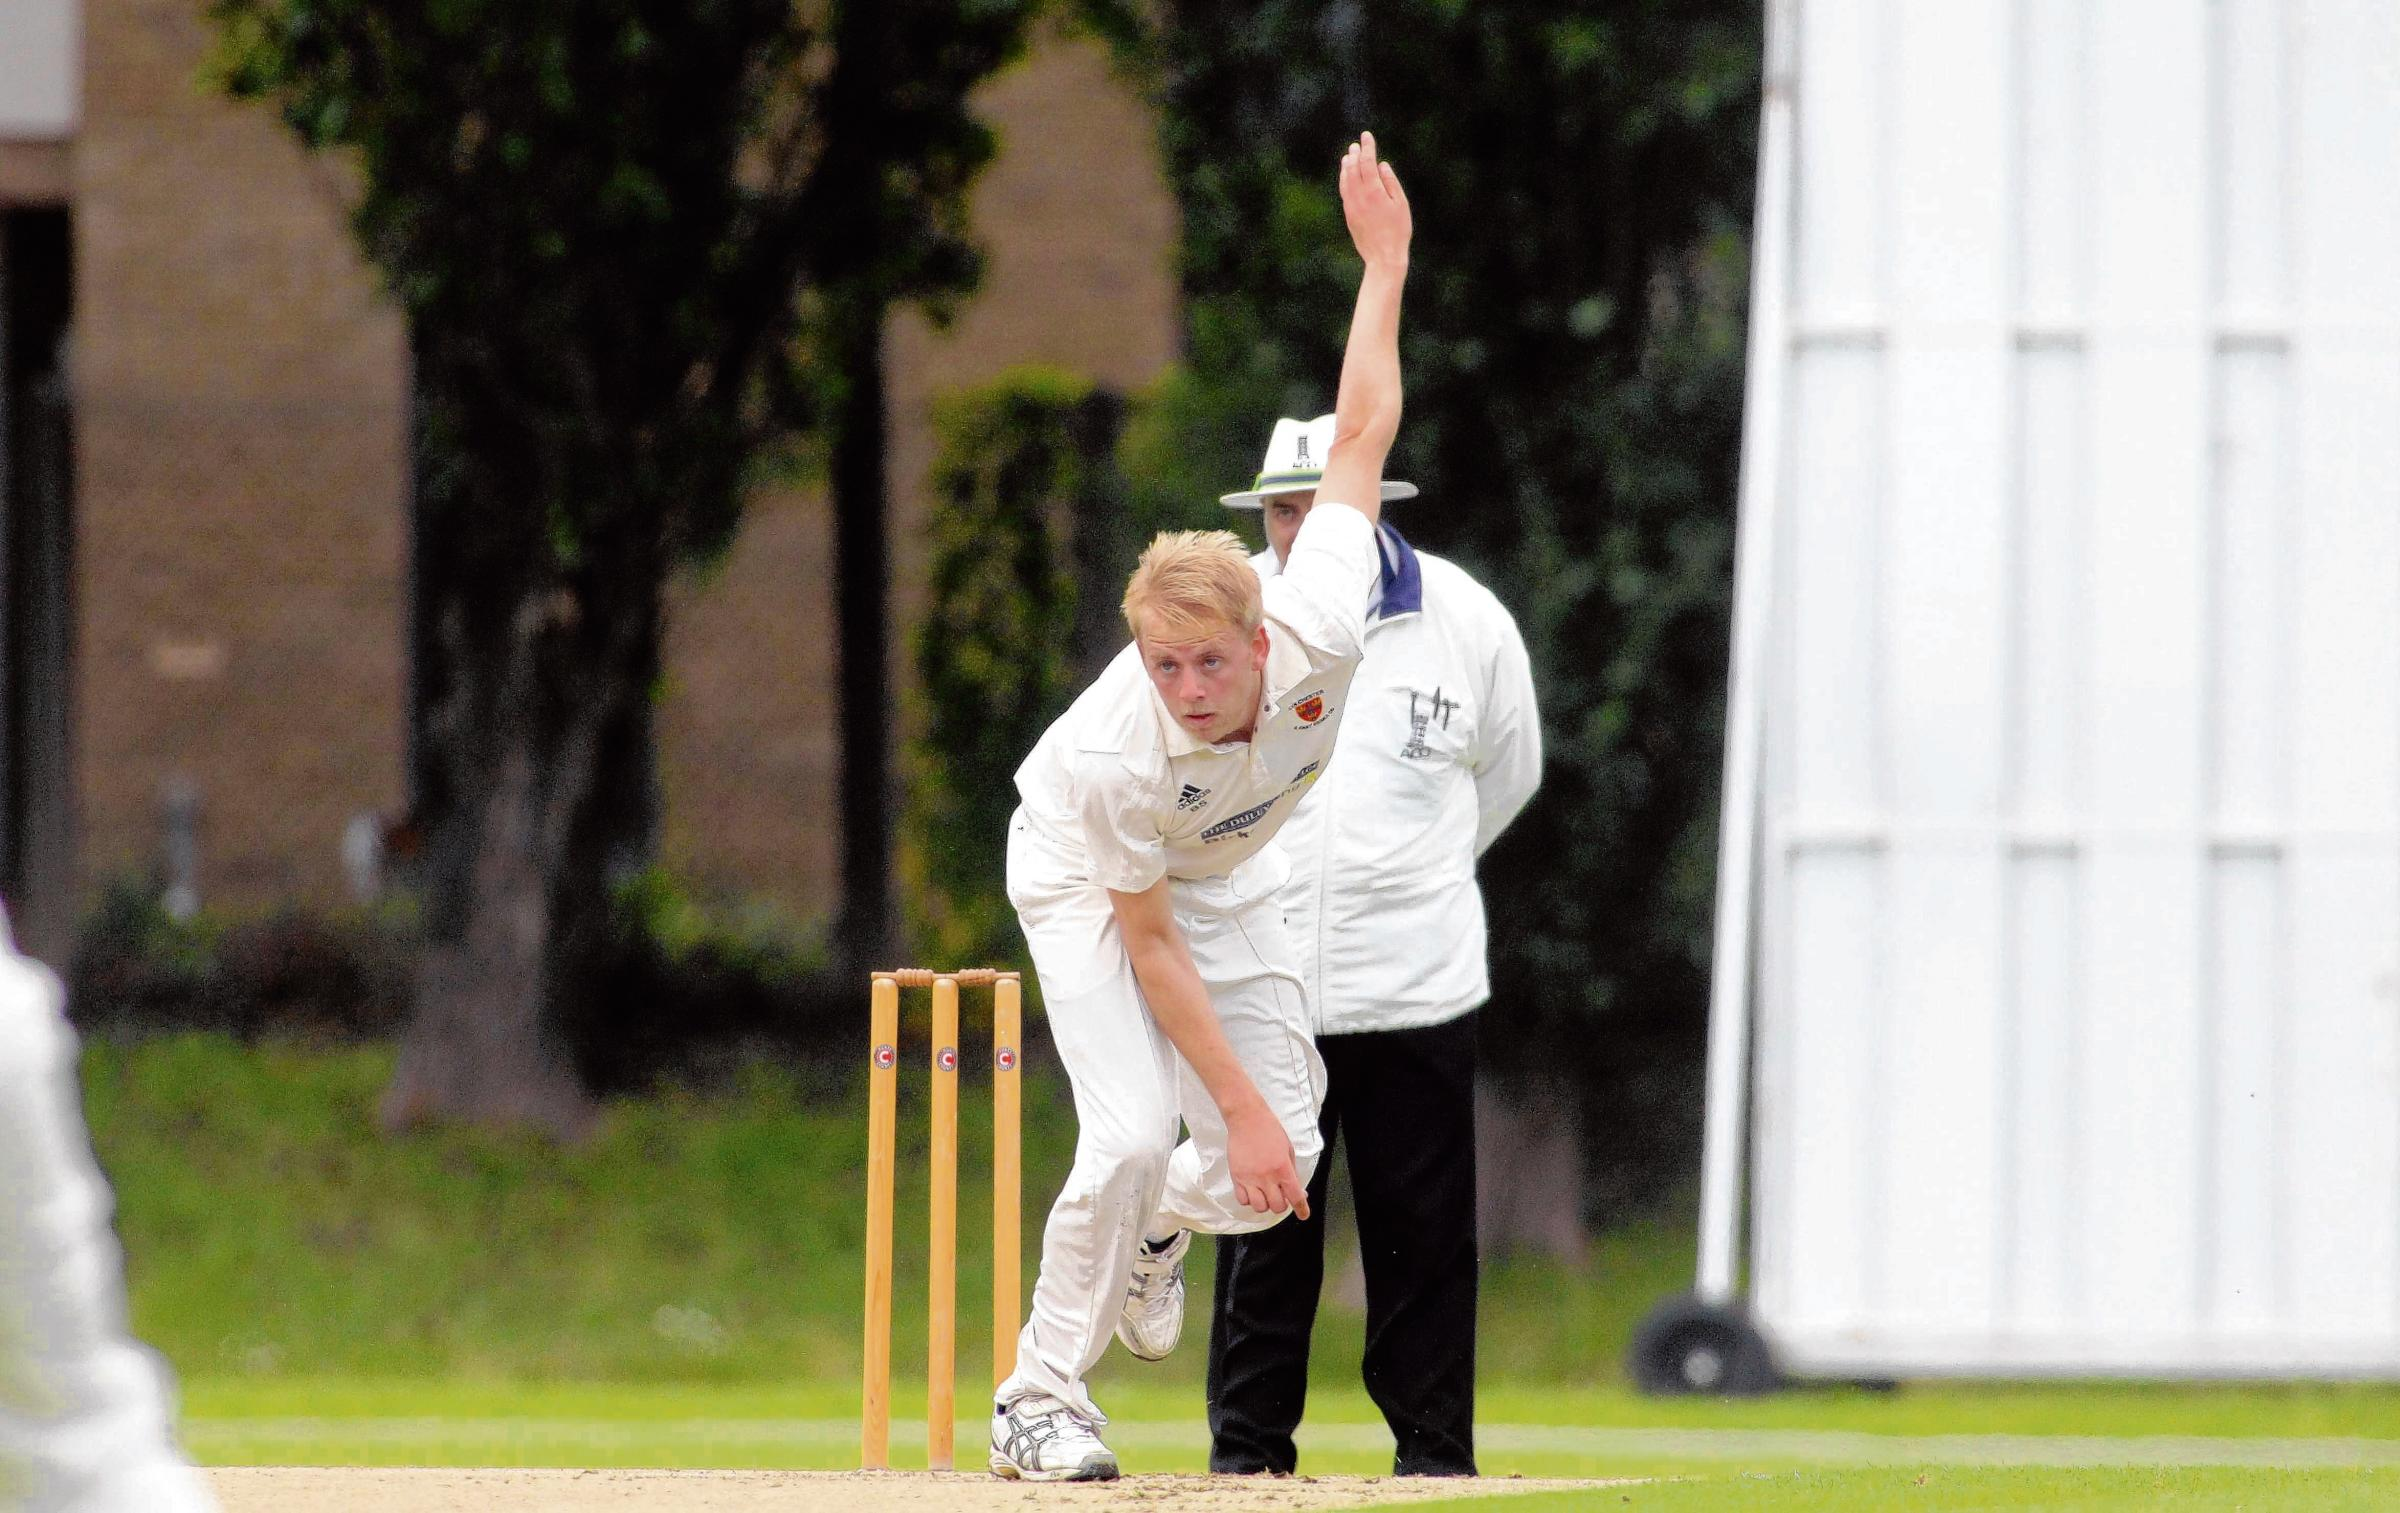 Pleased - Ben Stephens has been encouraged by the start his side have made to life in Shepherd Neame Essex League division one, following last season's relegation. Picture: STEVE ARGENT